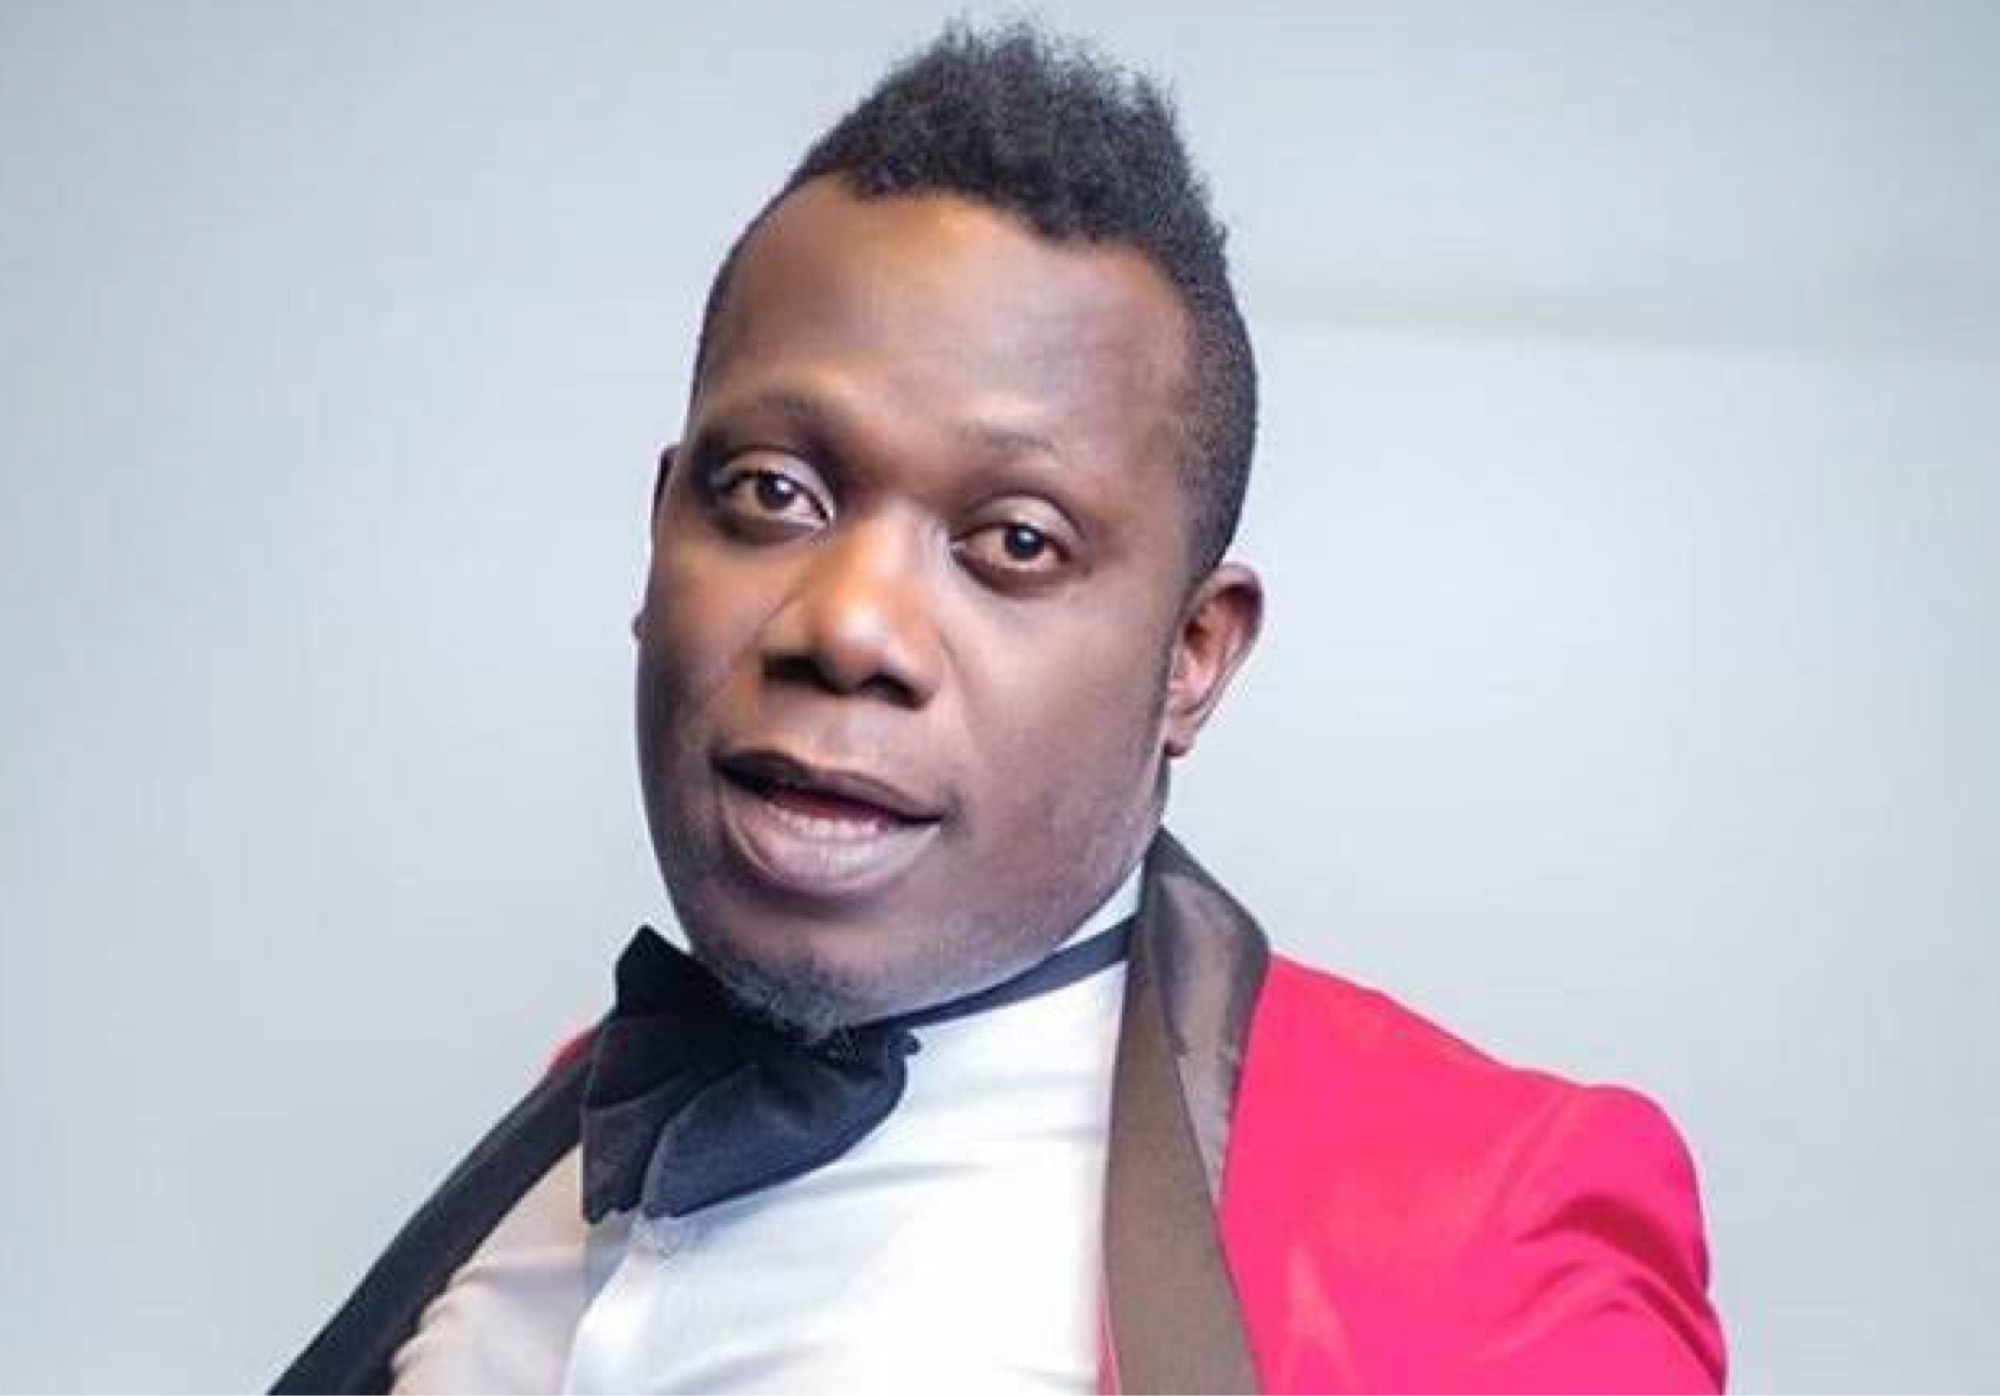 Singer Duncan Mighty Goes On Road Trip Wearing Life-Tortoise On His Neck